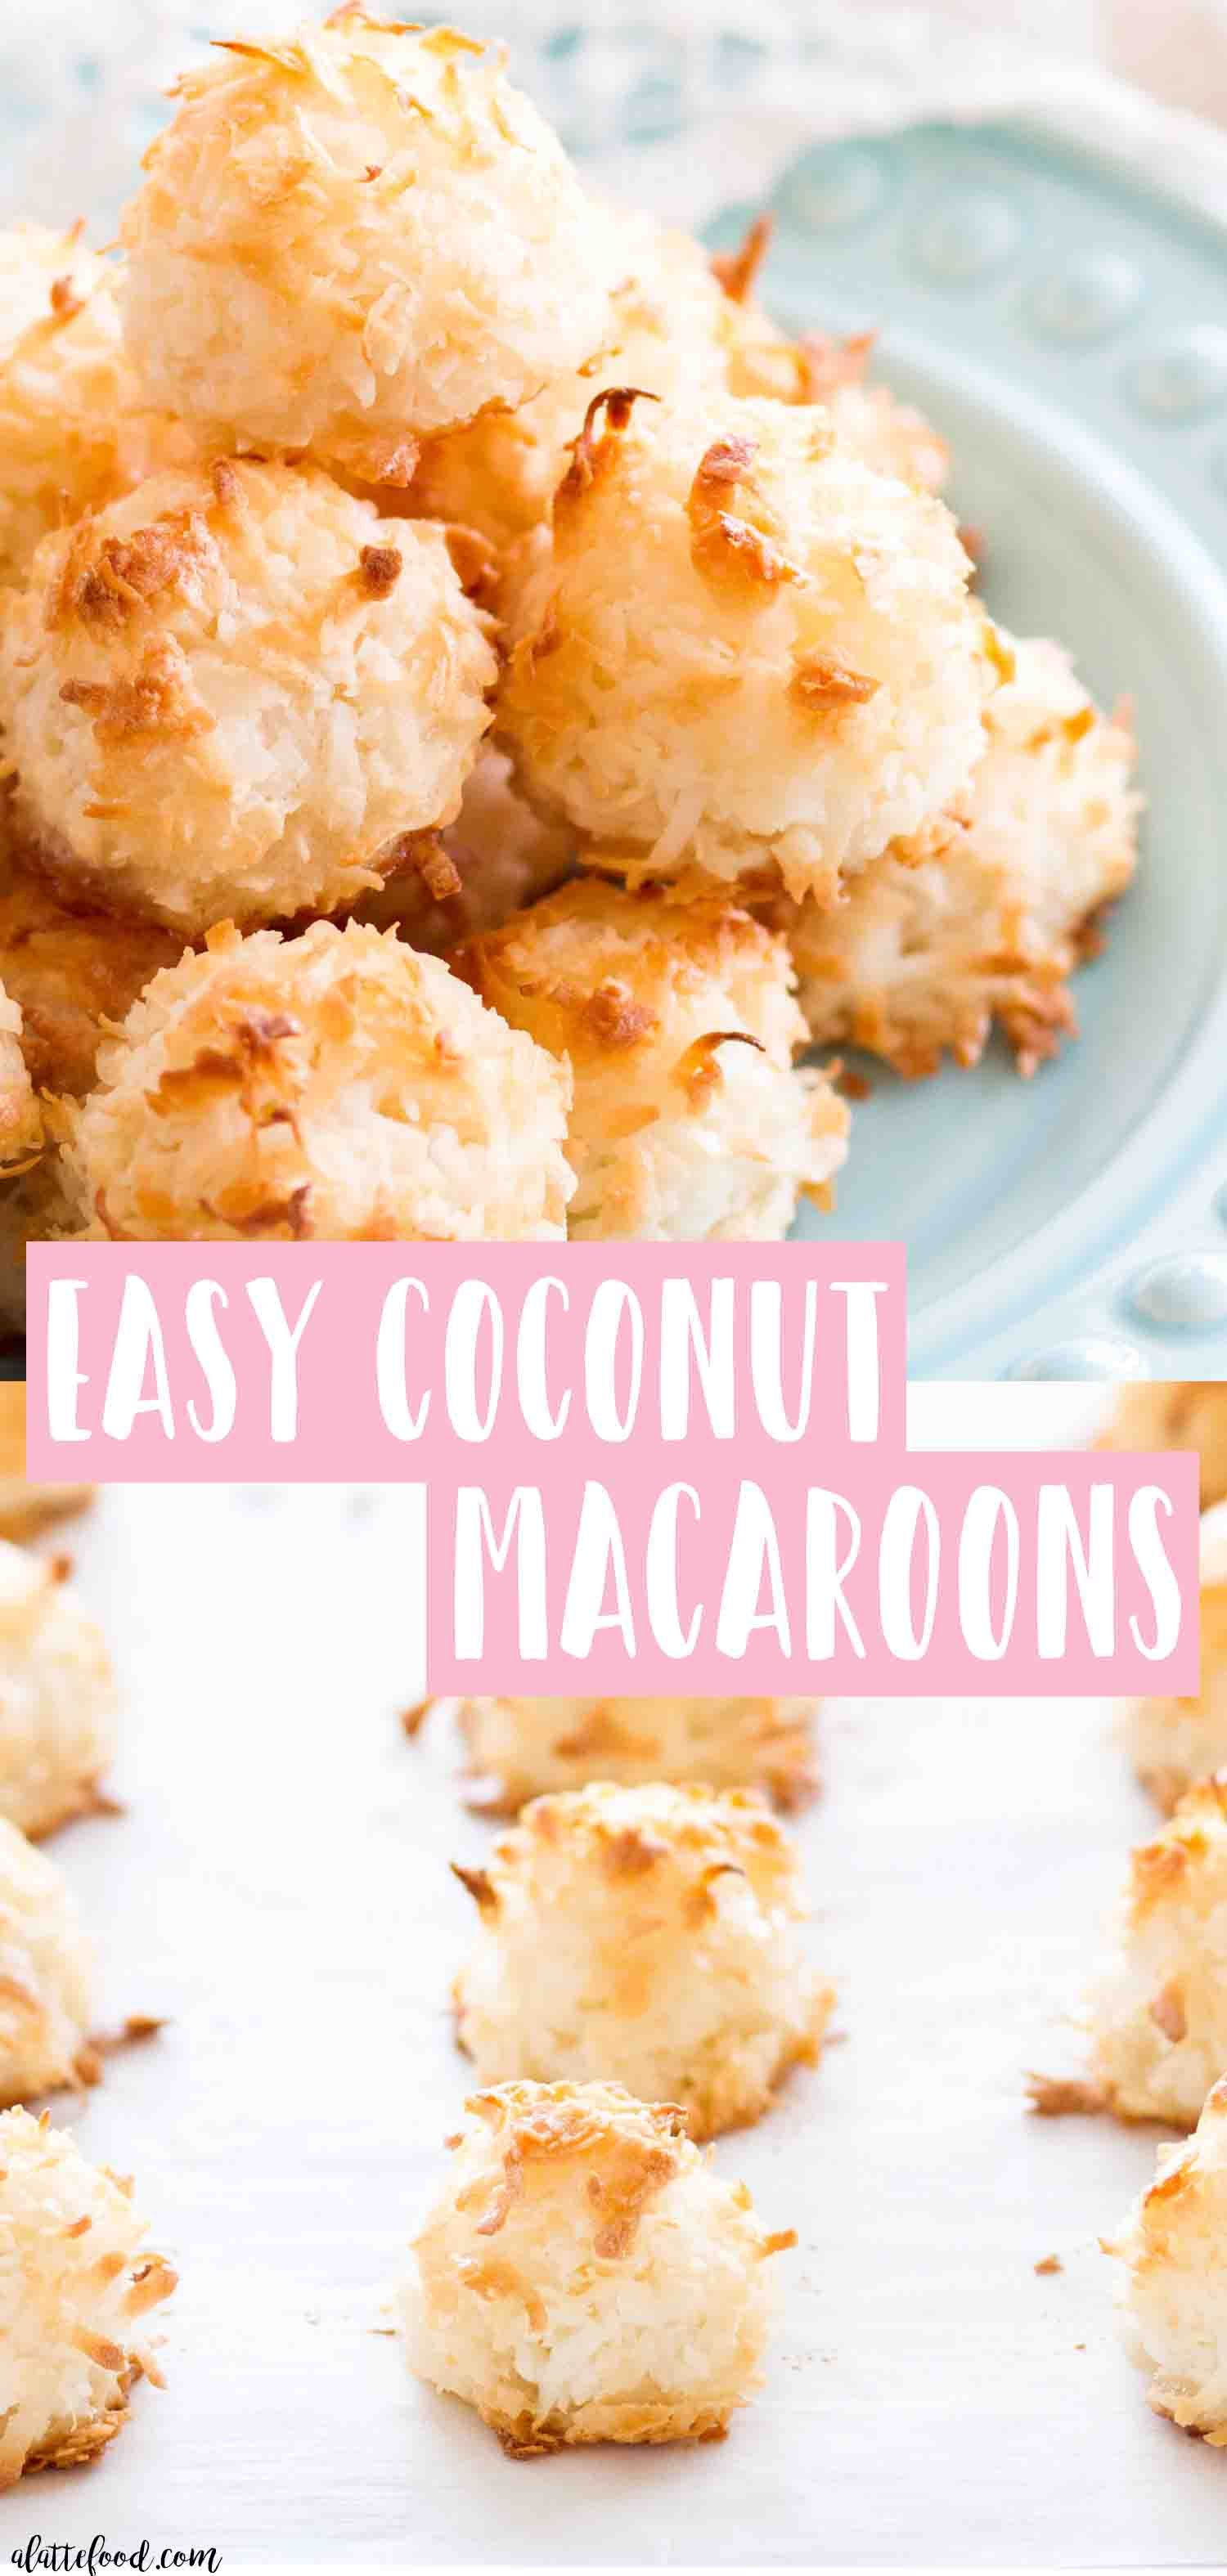 This Super Easy Coconut Macaroons Recipe Are Made With Egg Whites